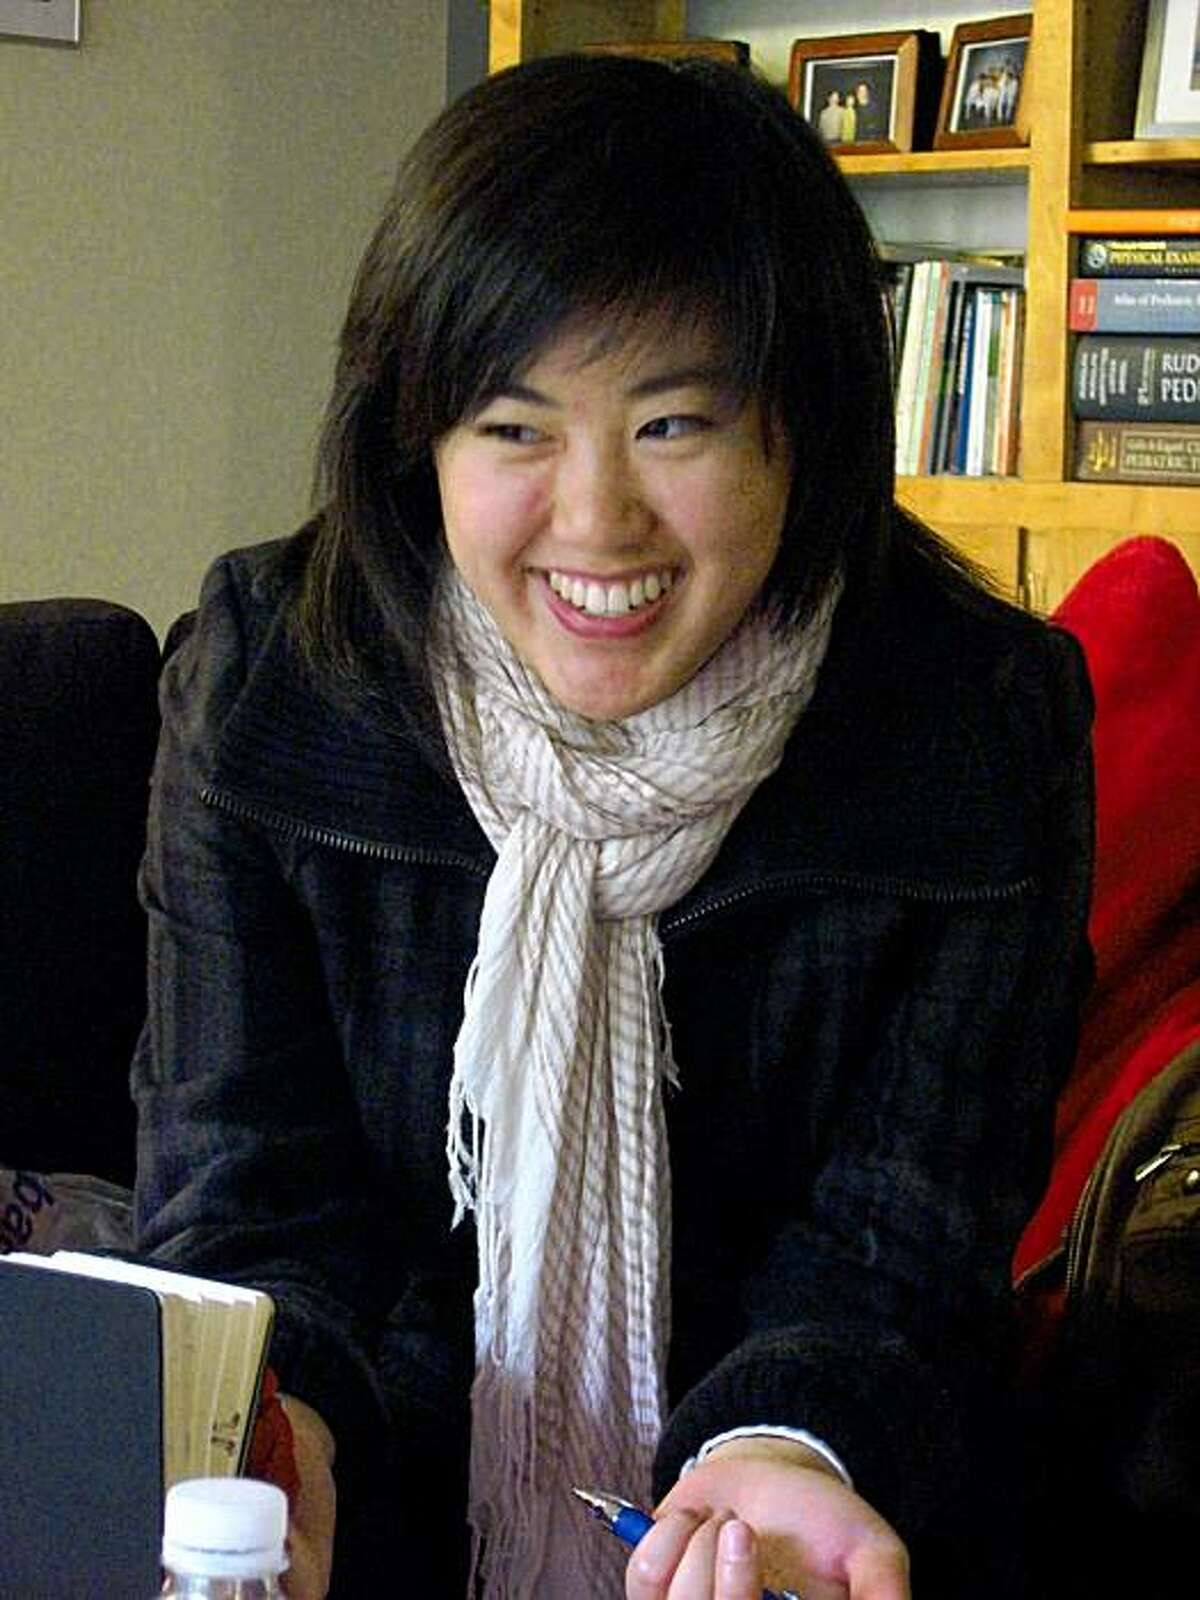 Serena Wu, co-founder of MyMomIsAFob.com and MyDadIsAFob.com, sites that celebrate the offbeat sayings and doings of Asian immigrant parents everywhere.